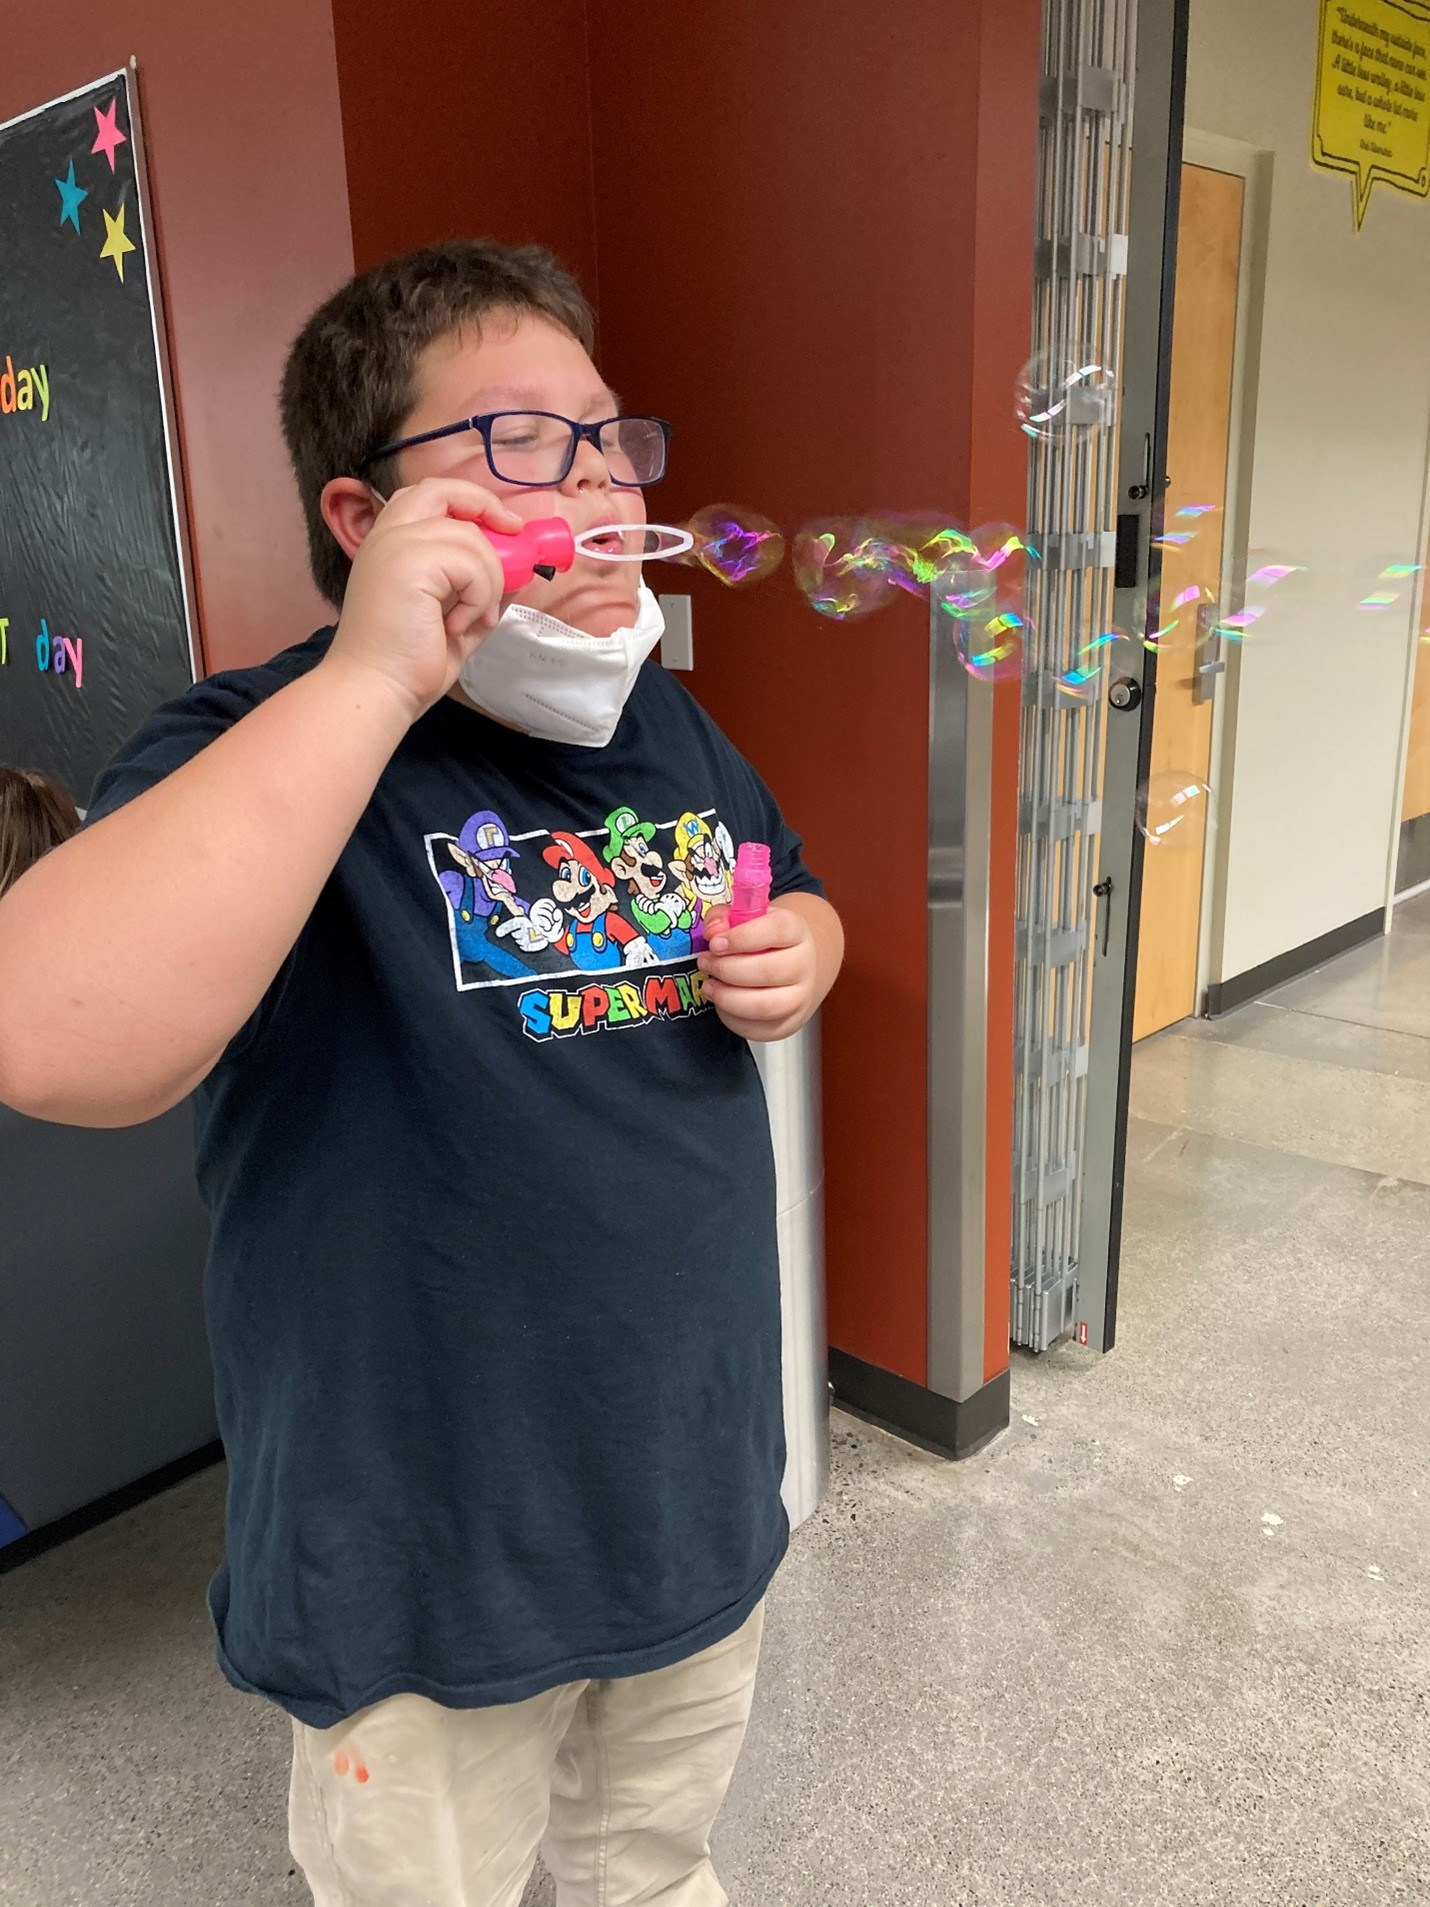 Photo of a kid blowing bubbles with their mask down